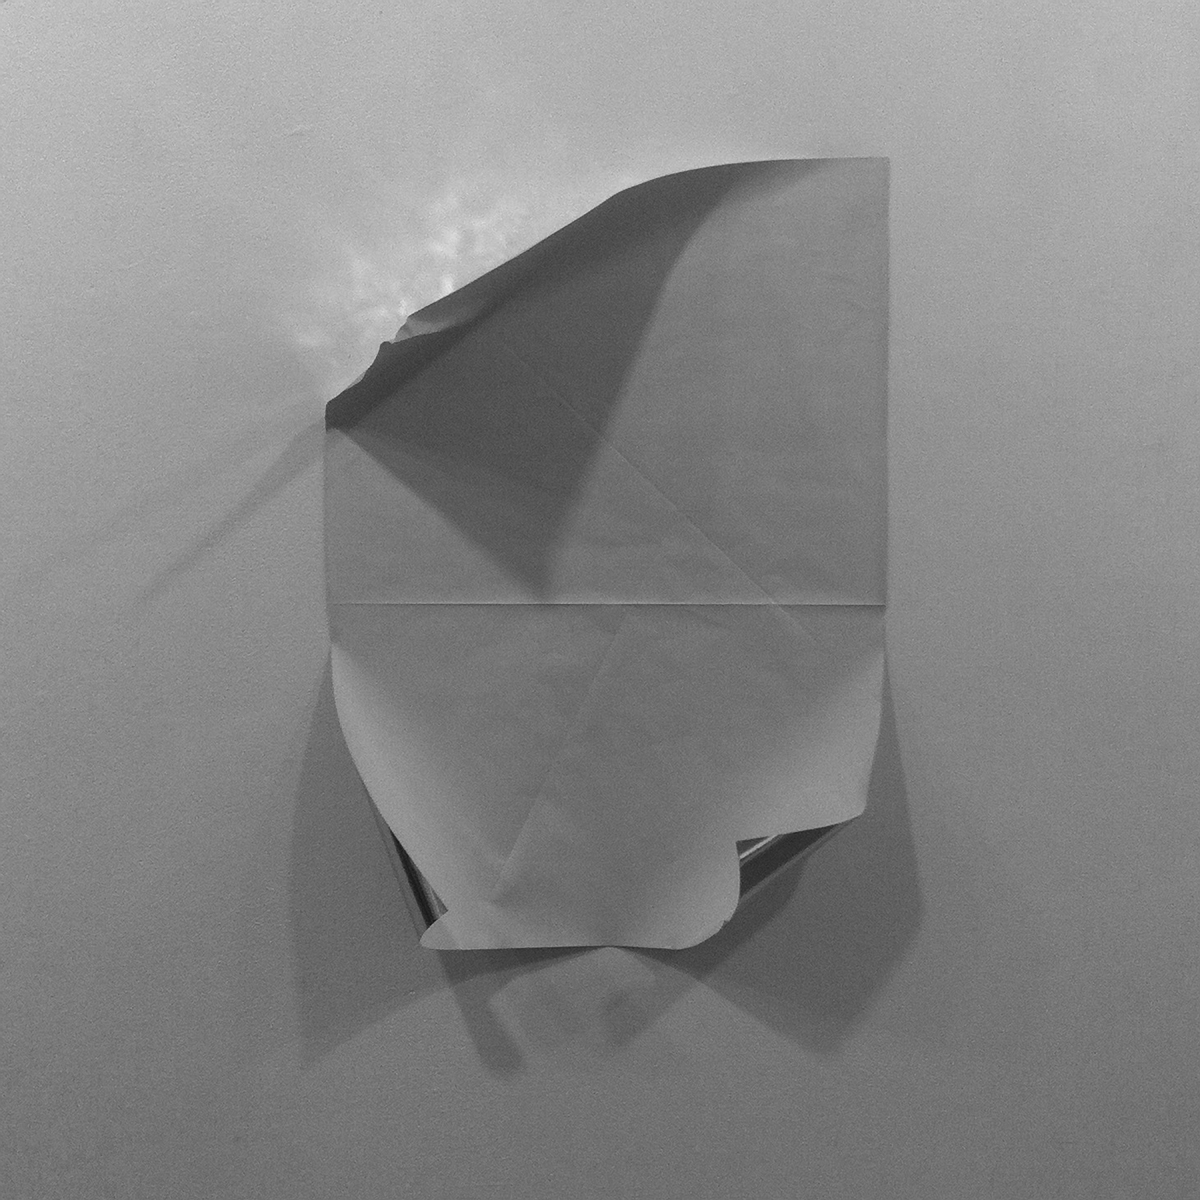 Untitled (from within)  2014, Temporary site specific installation, reflective paper folded and adhered to a wall with an external spotlight. 30 x 30 inches